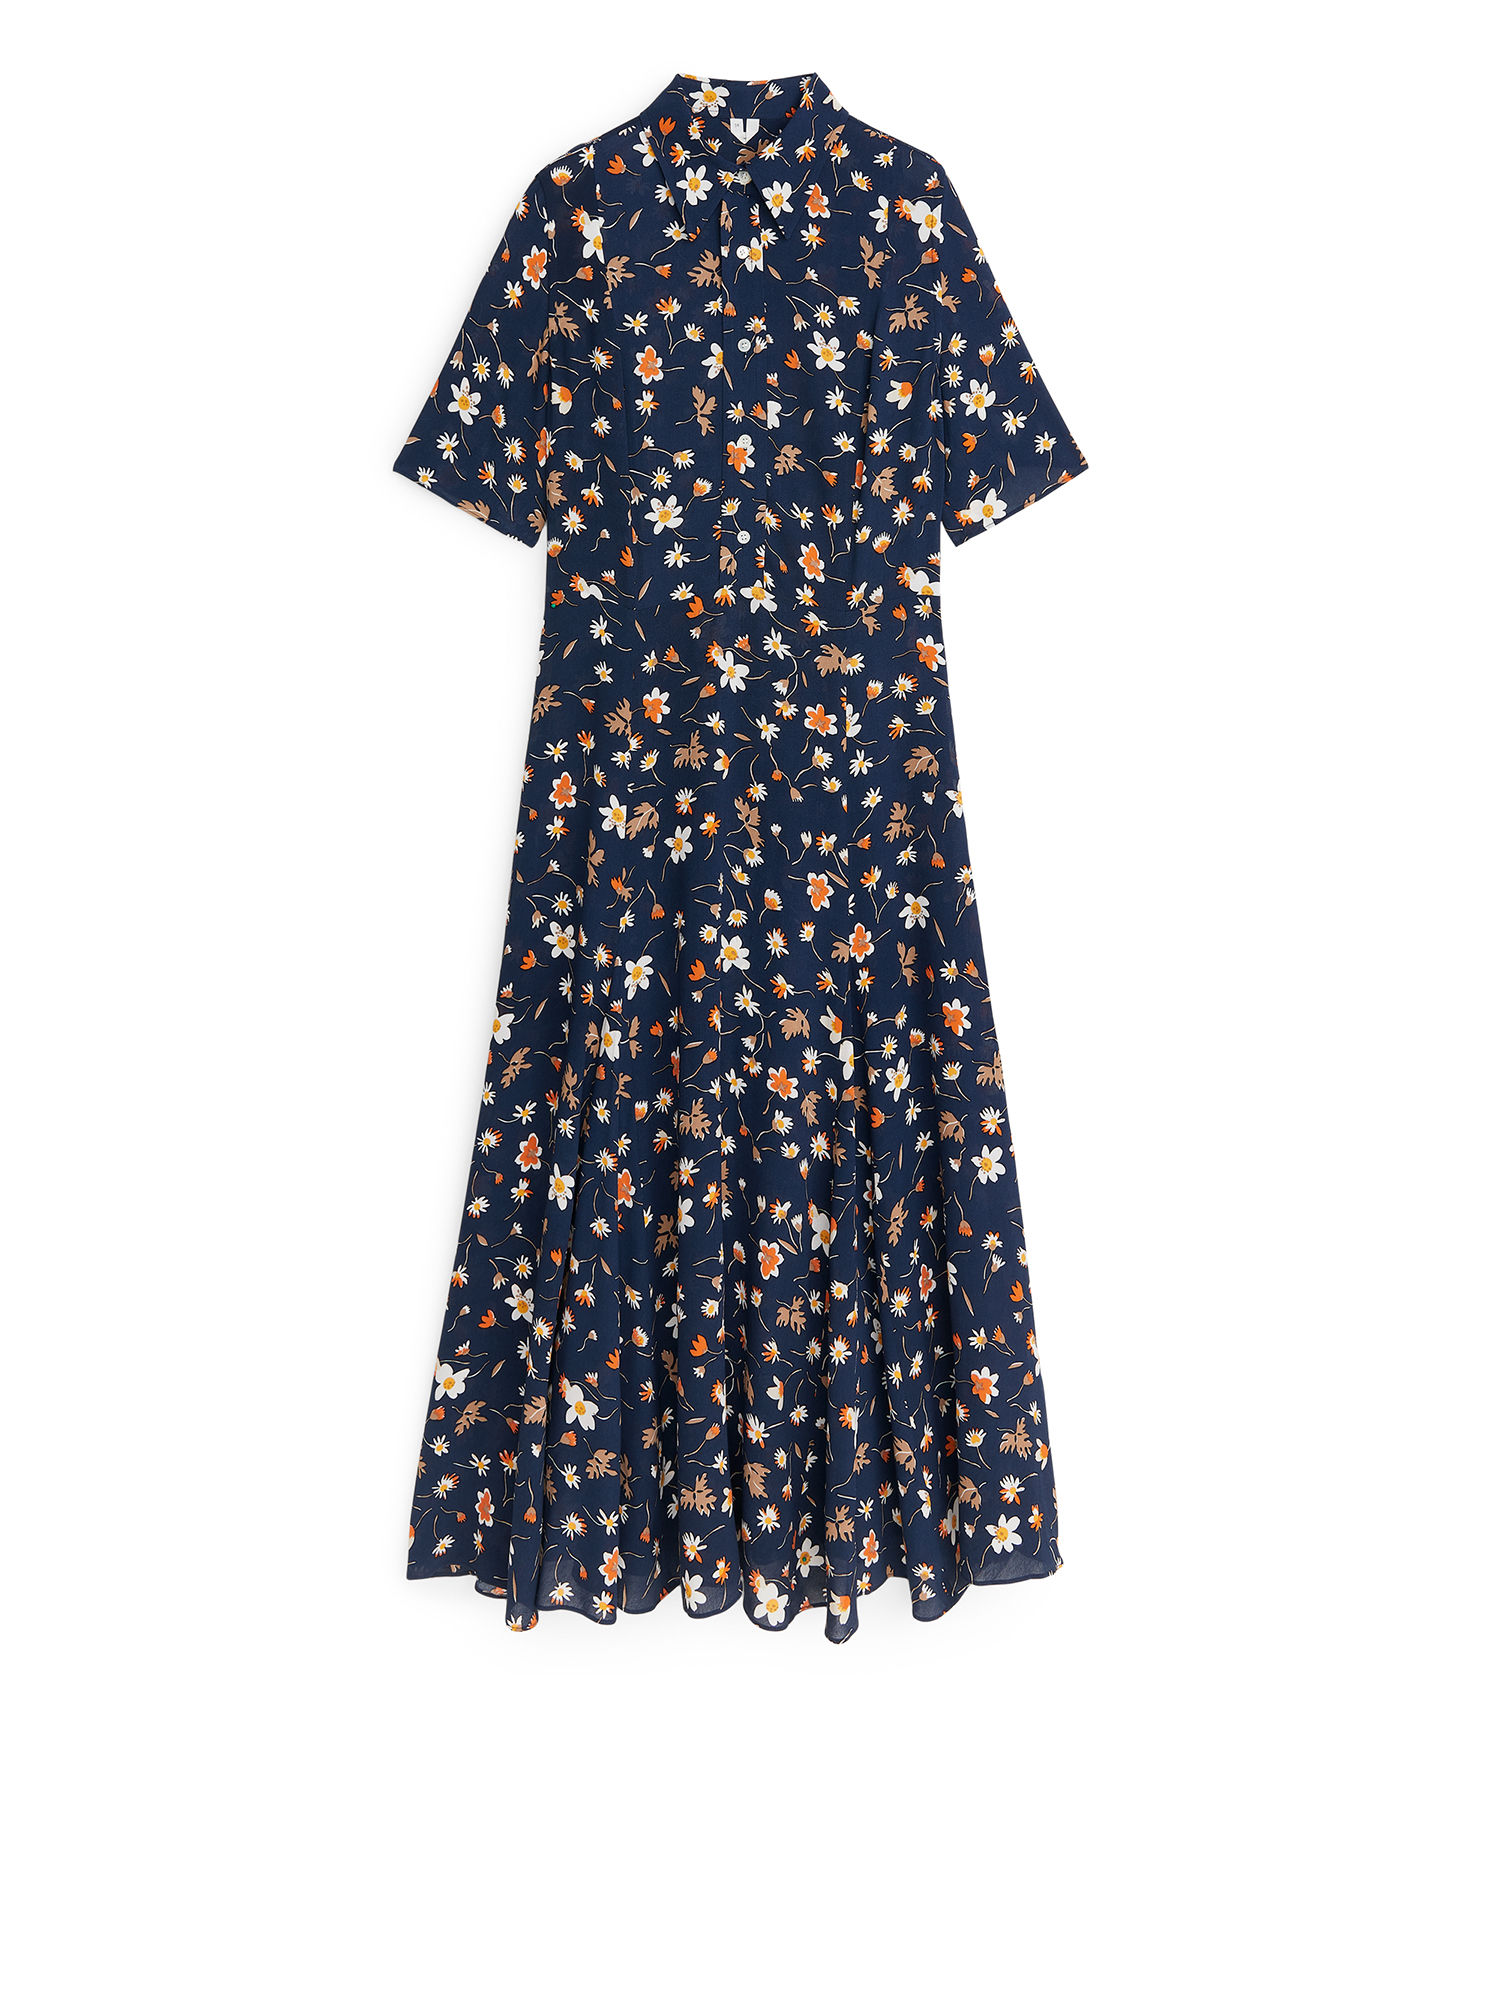 Fabric Swatch image of Arket f. ducharne floral crepe dress in blue